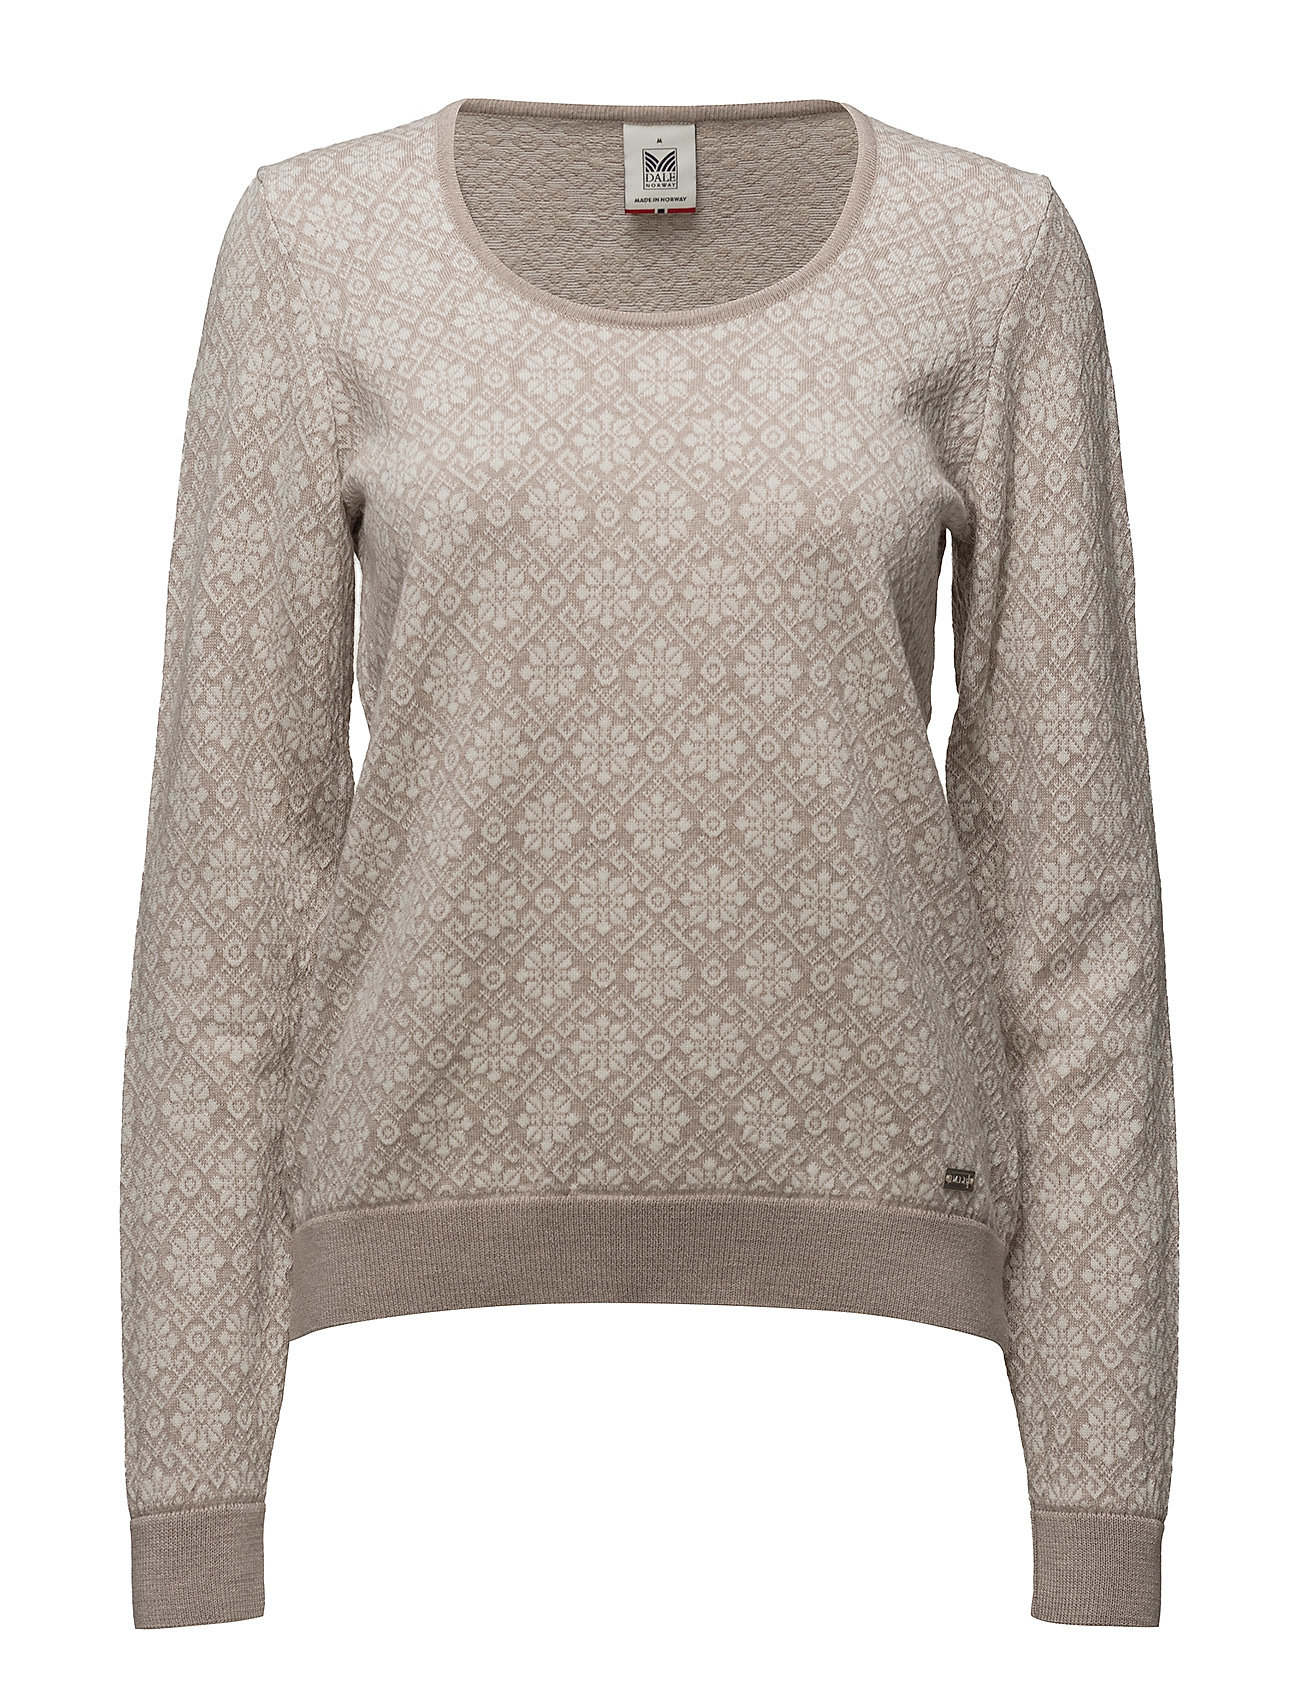 dale of norway – Sonja feminine sweater på boozt.com dk